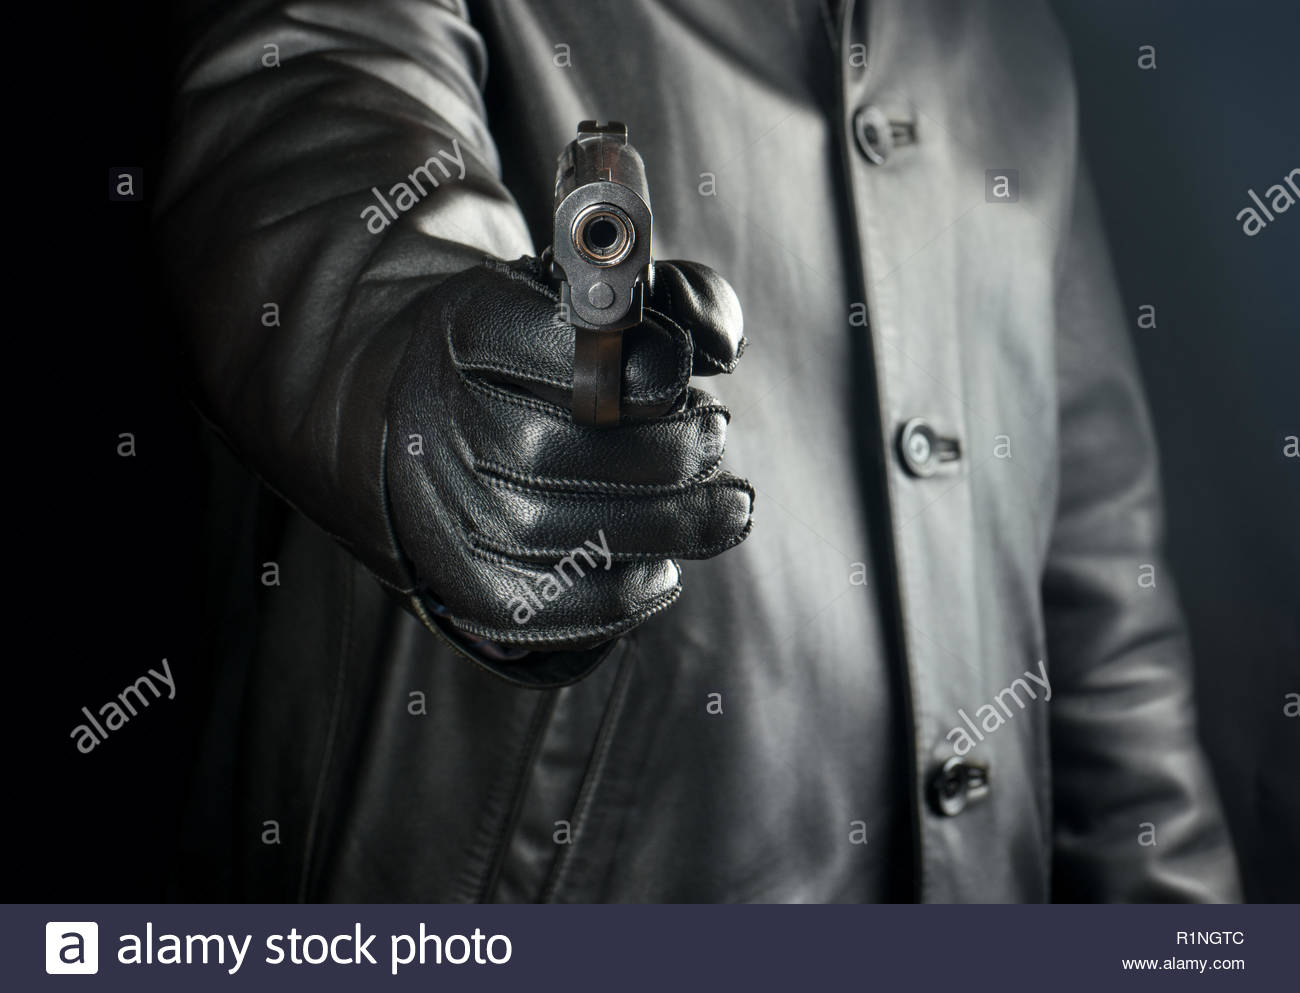 Bandit directs gun on black background closeup Stock Photo 1300x993